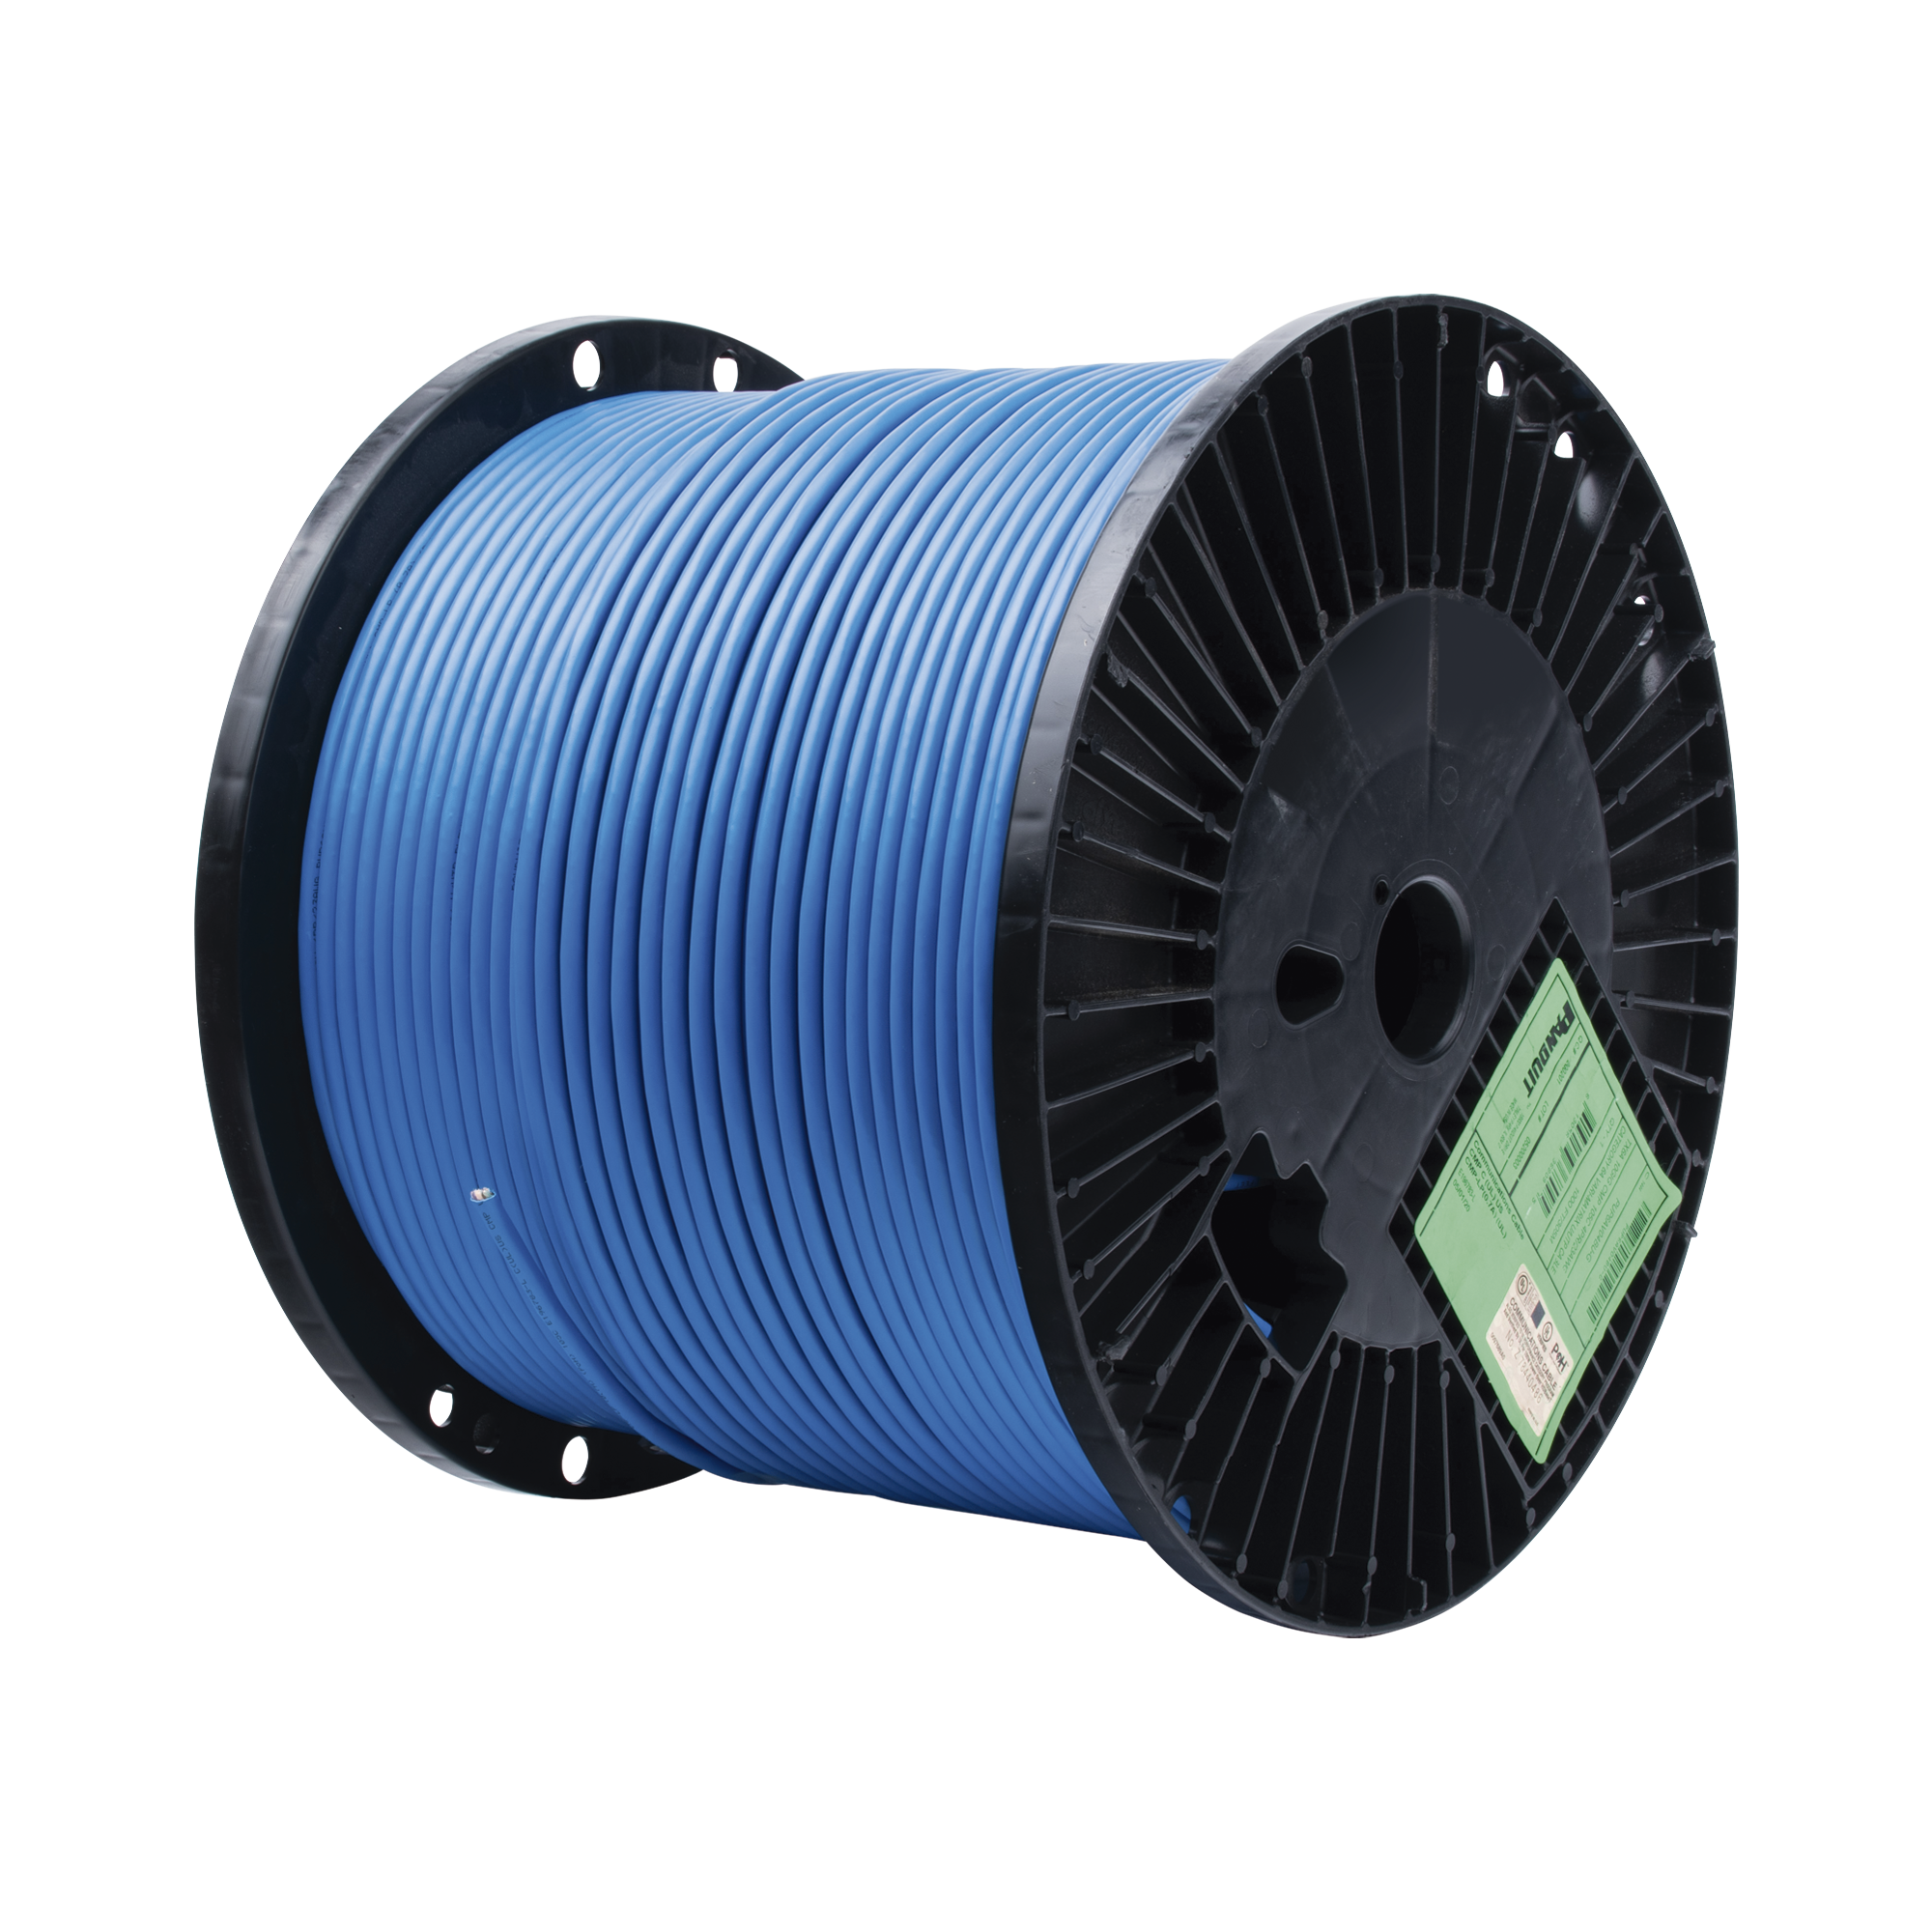 Bobina de Cable UTP de 4 Pares, Vari-MaTriX, Cat6A, 23 AWG, CMP (Plenum), Color Azul, 305m